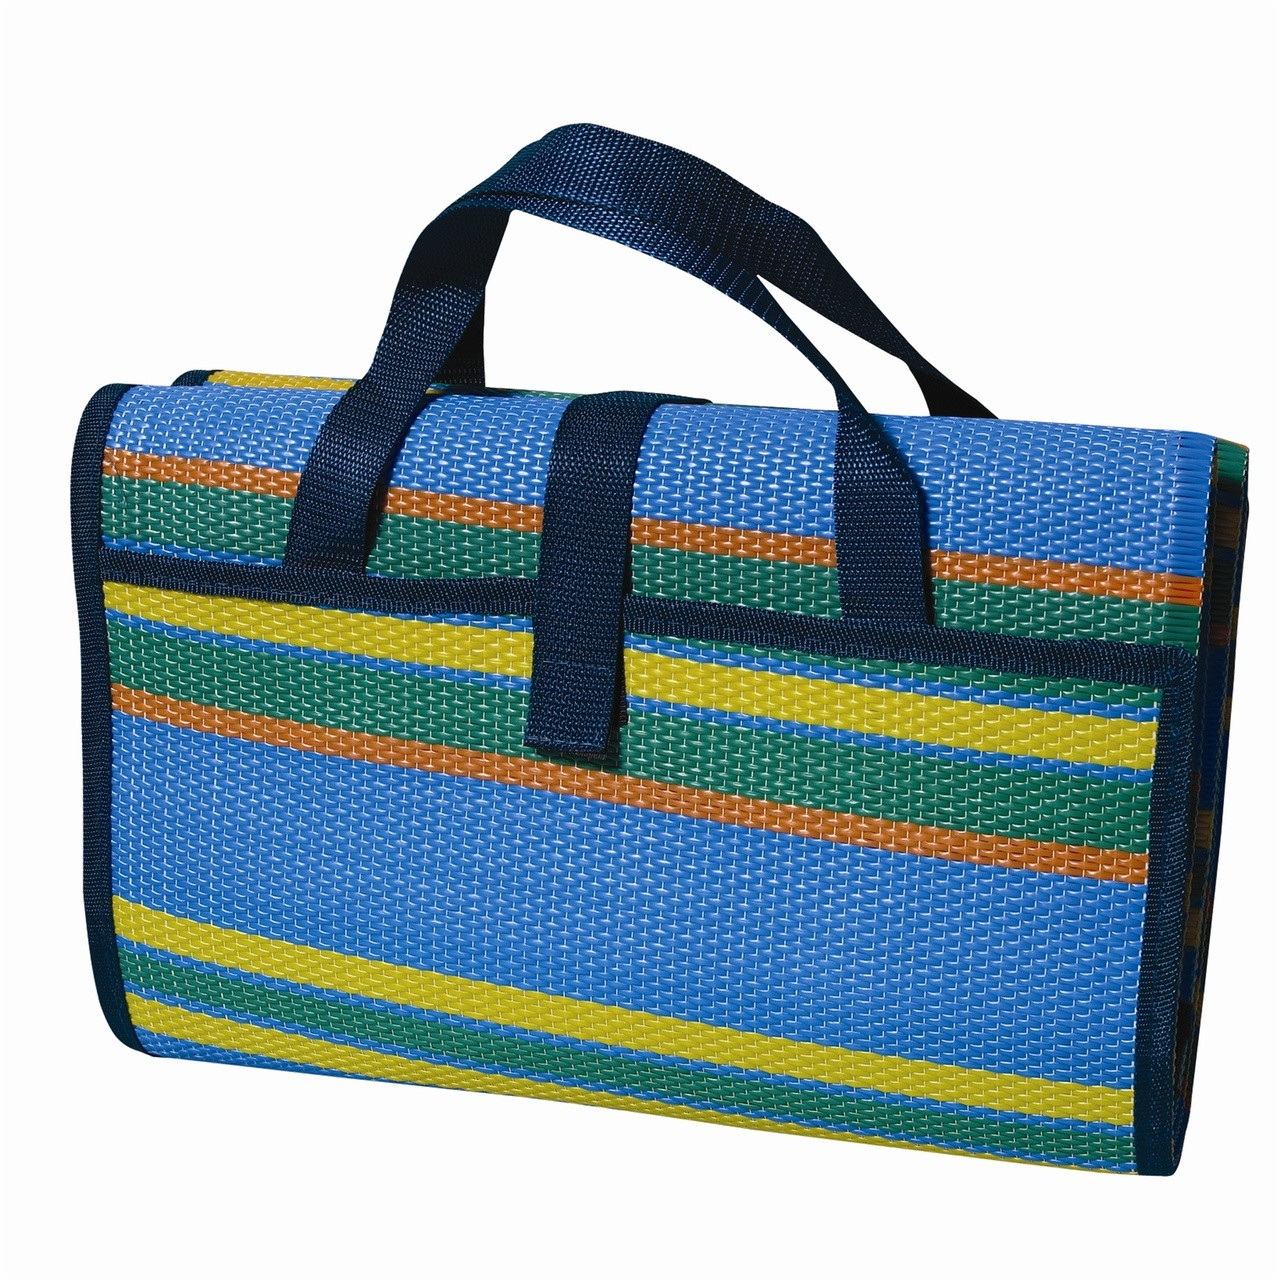 Wenzel Multi Mat, blue yellow green and orange striped, folded up with the carry handles extended